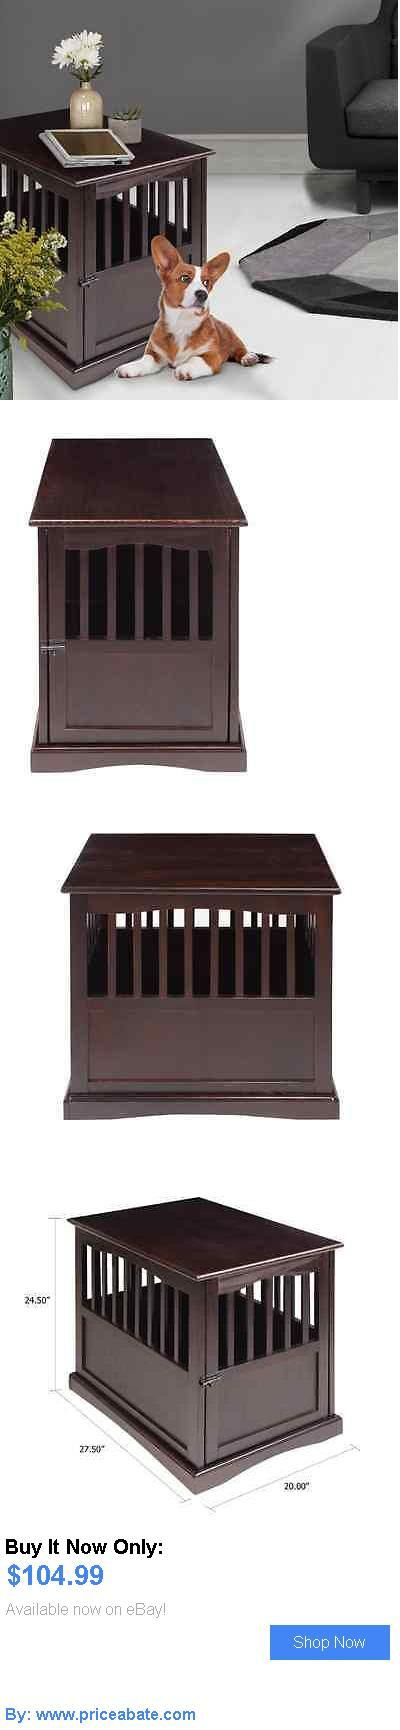 Animals Dog: Dog Crate End Table Solid Wood Pet Kennel Indoors Stylish Small Espresso Safe BUY IT NOW ONLY: $104.99 #priceabateAnimalsDog OR #priceabate